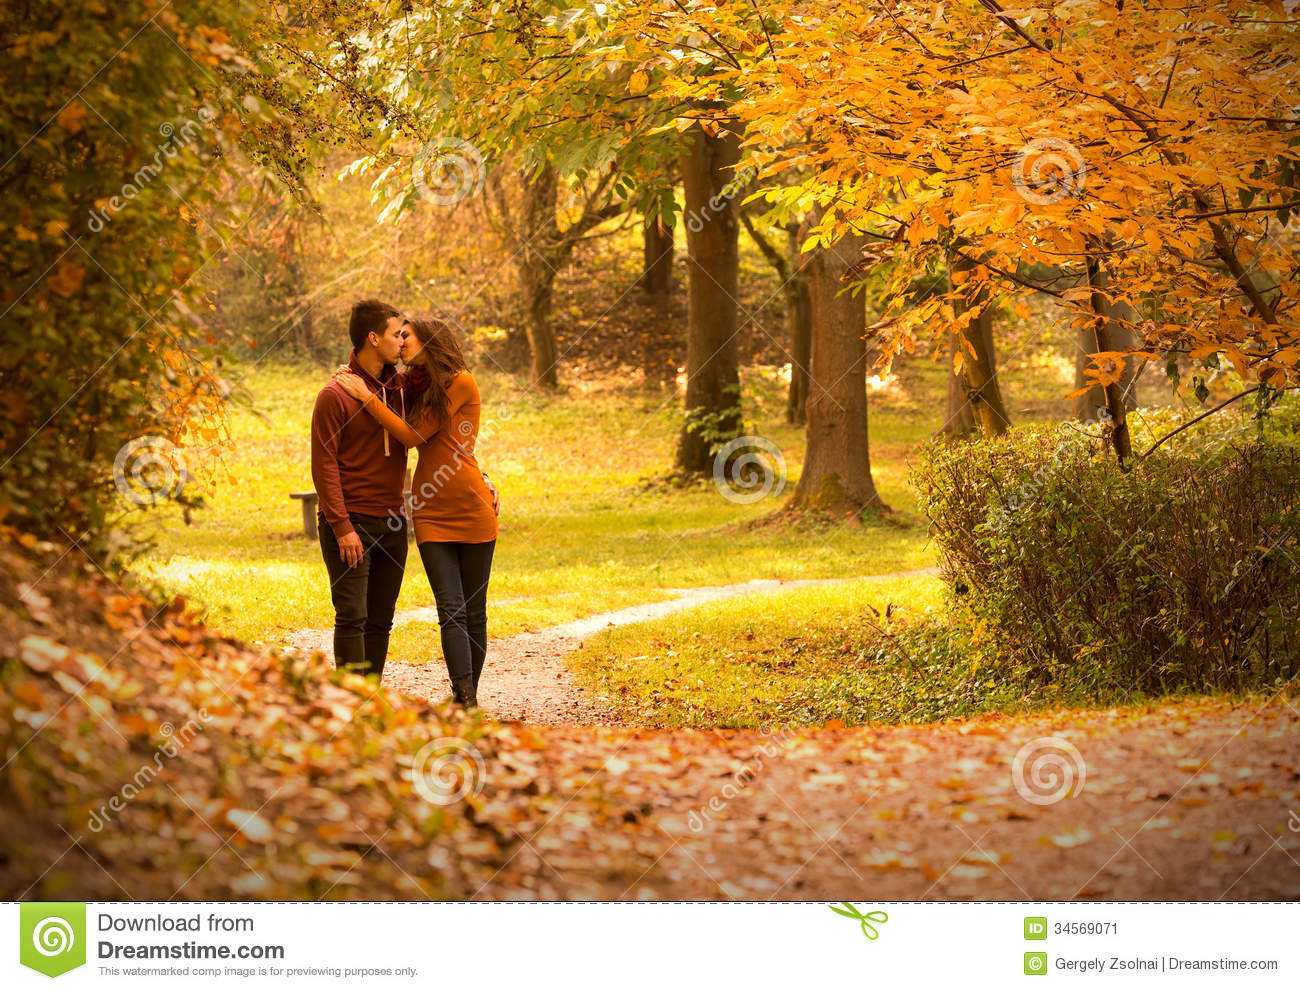 Fall Fairy Wallpaper Kiss Stock Image Image Of Caucasian Colorful Healthy